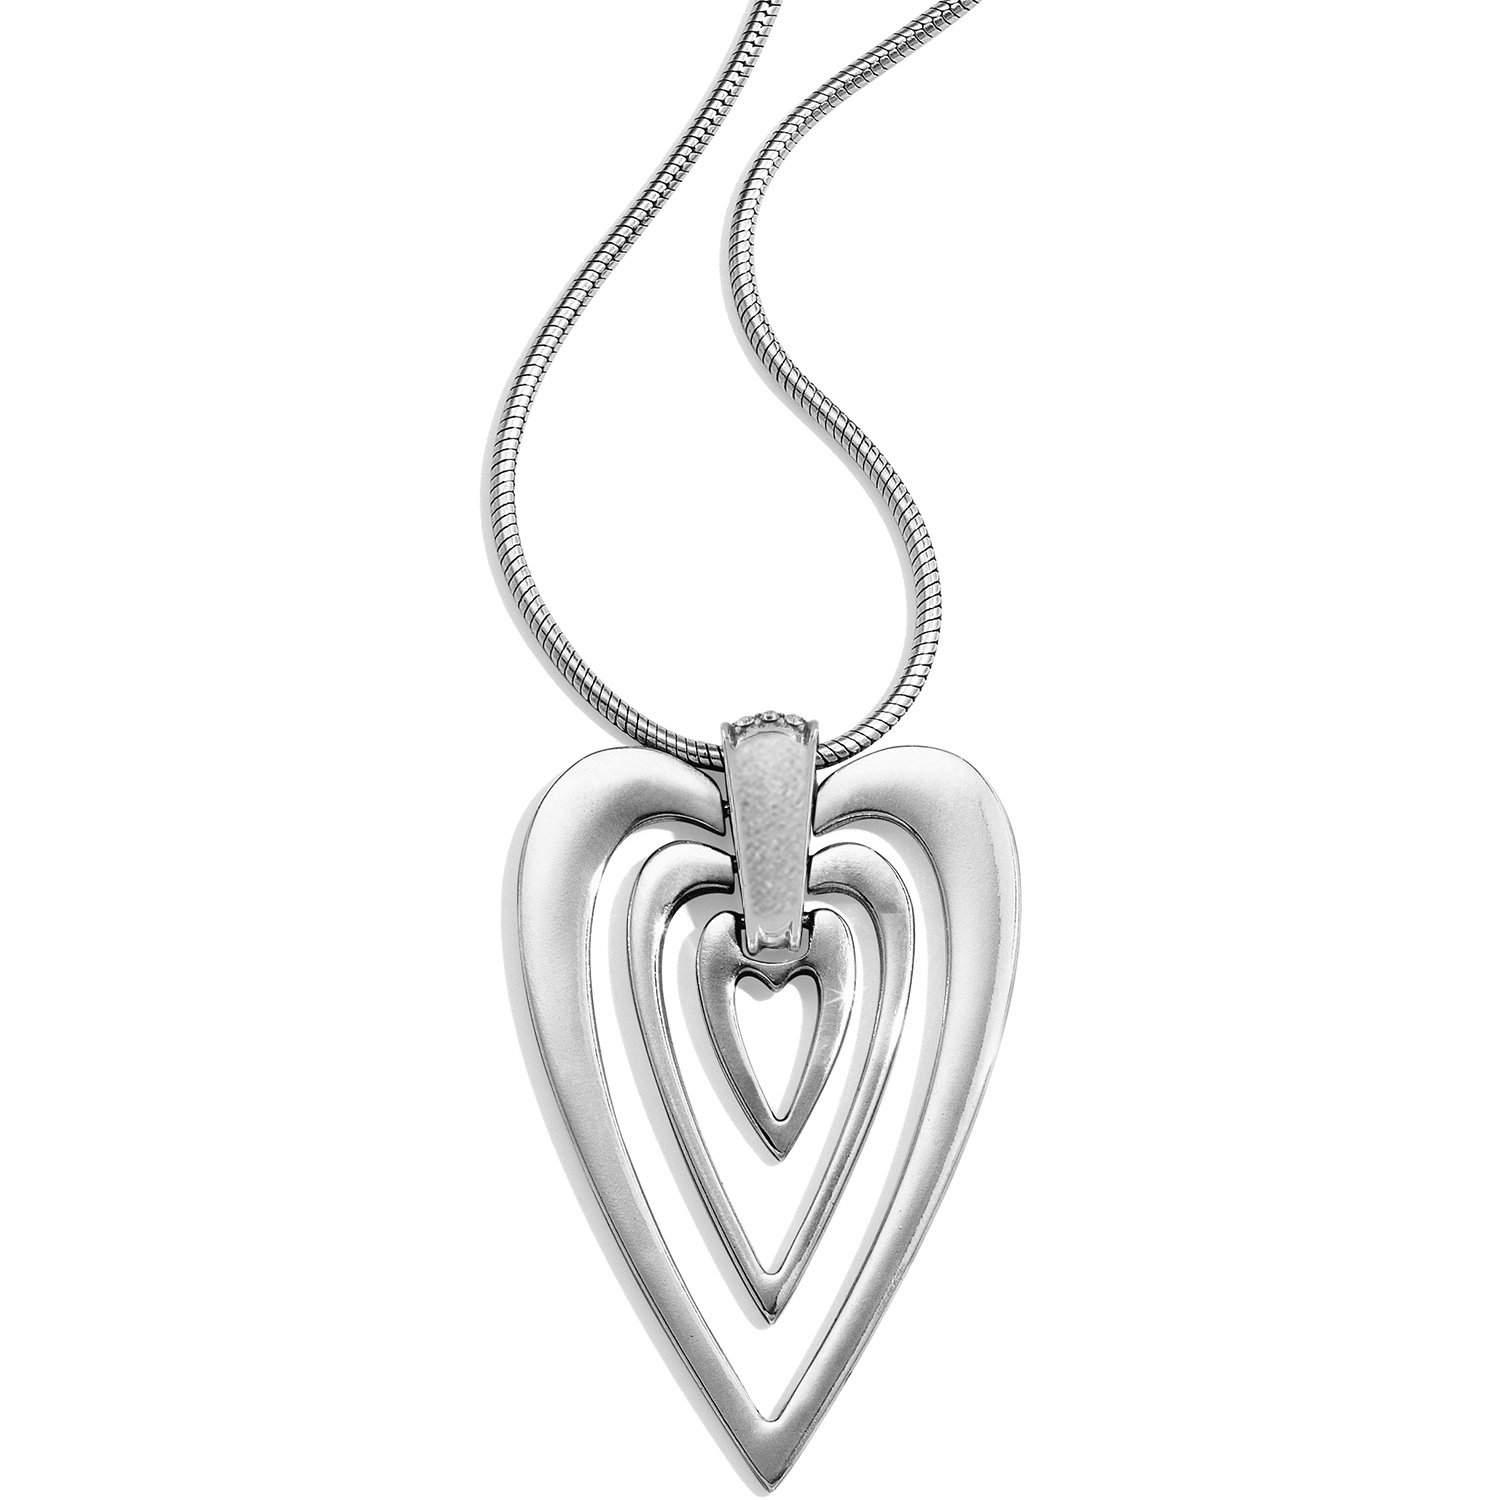 Meridian Swing Hearts Necklace With Most Recent Joined Hearts Necklaces (Gallery 24 of 25)